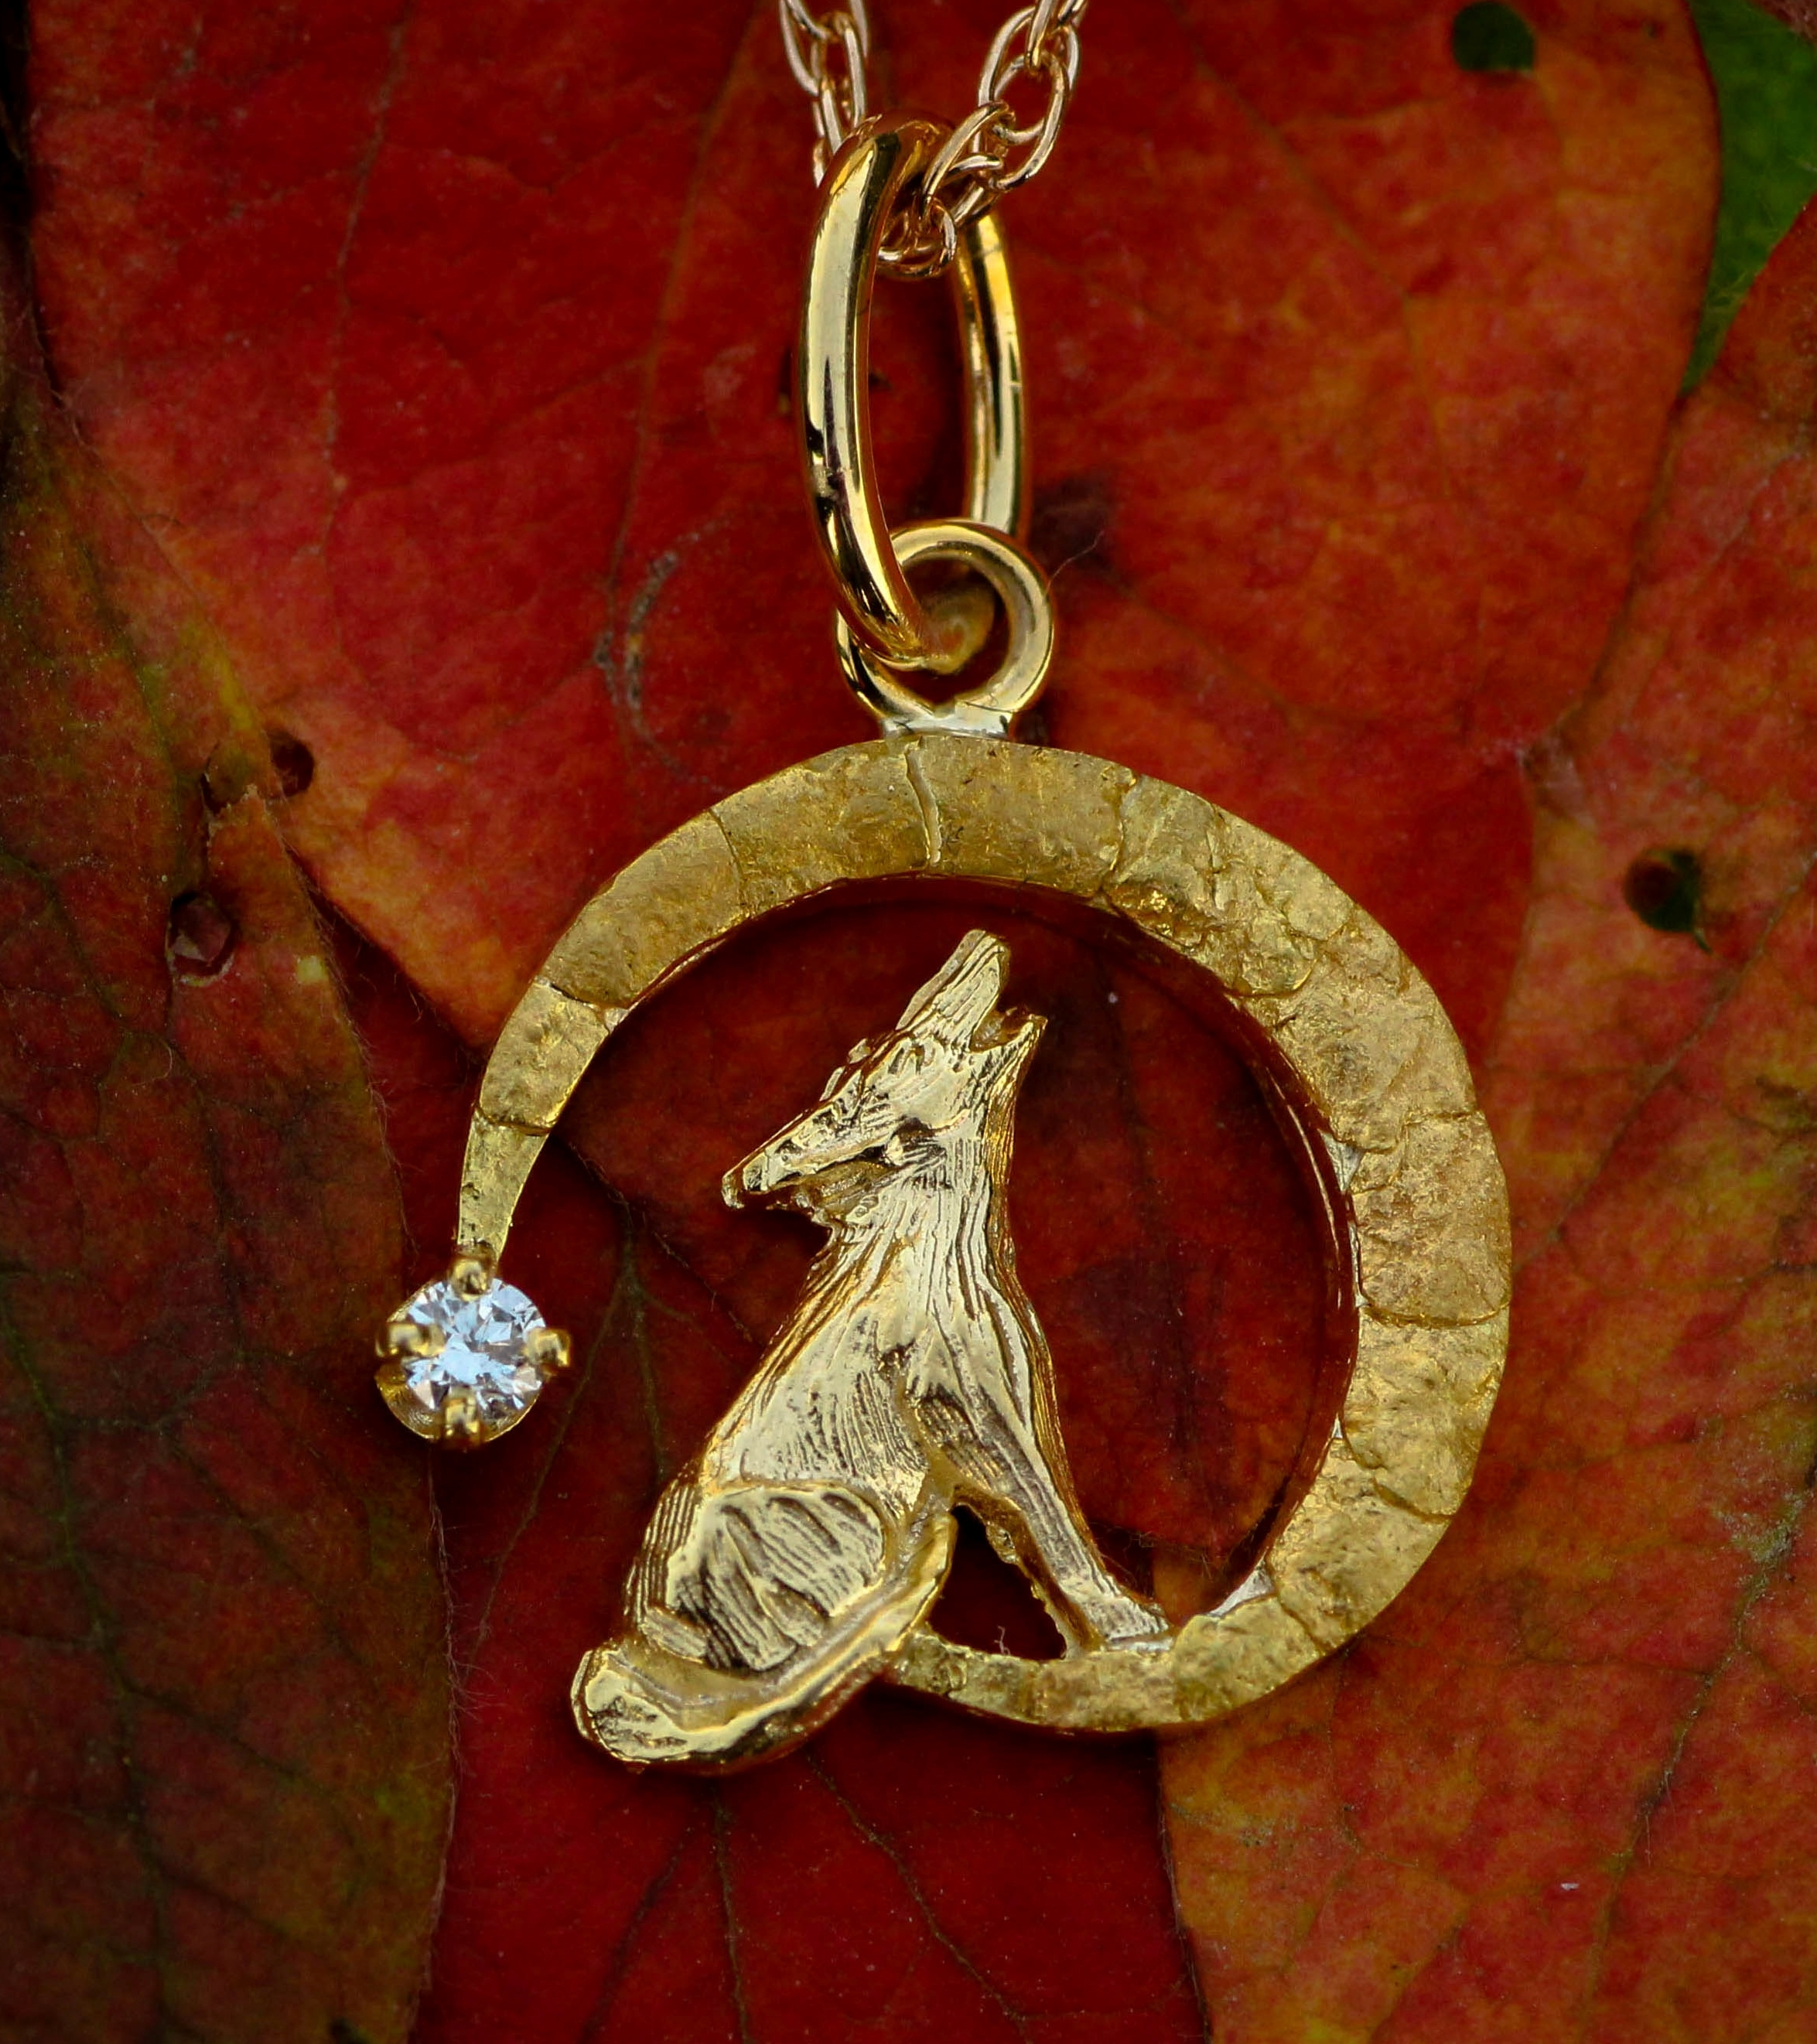 Wild Alaska Howling Wolf Pendant Crafted in 14kt Yellow Gold with Natural Alaskan Gold Nuggets